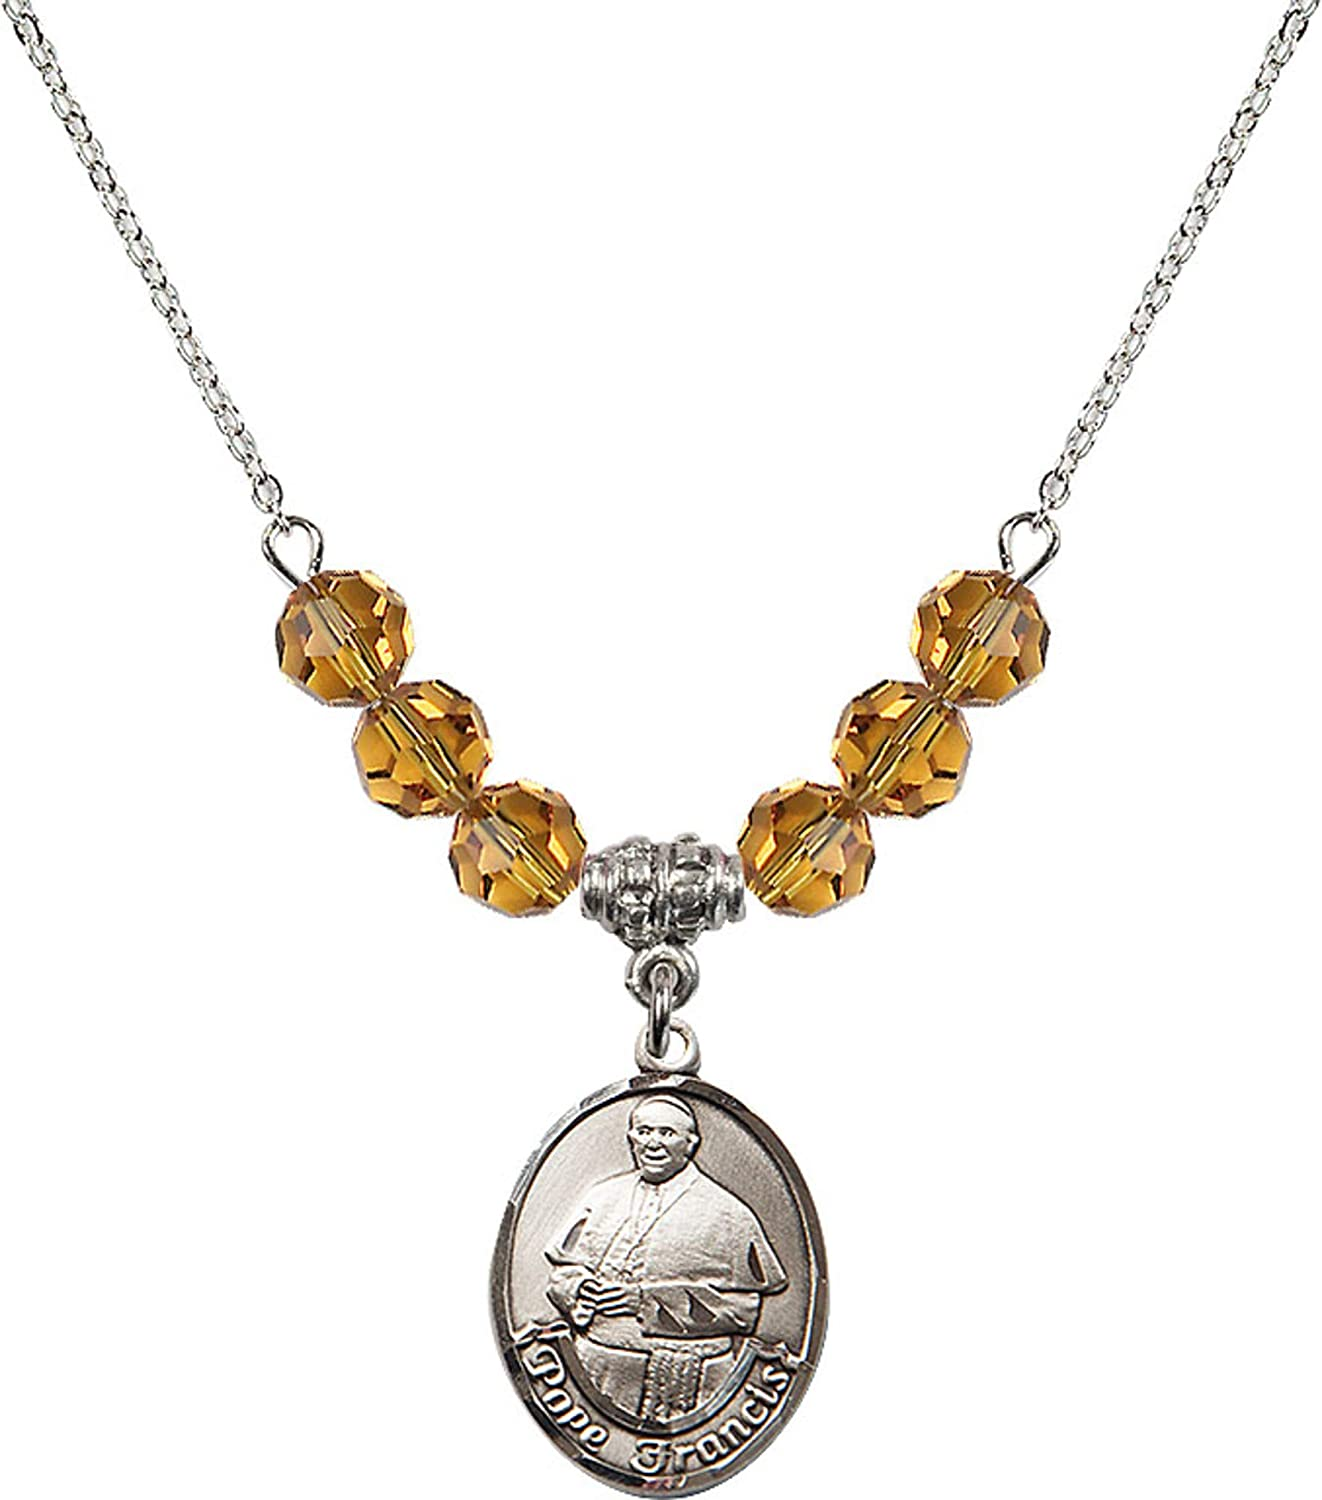 Bonyak Jewelry 18 Inch Rhodium Plated Necklace w// 6mm Yellow November Birth Month Stone Beads and Pope Francis Charm